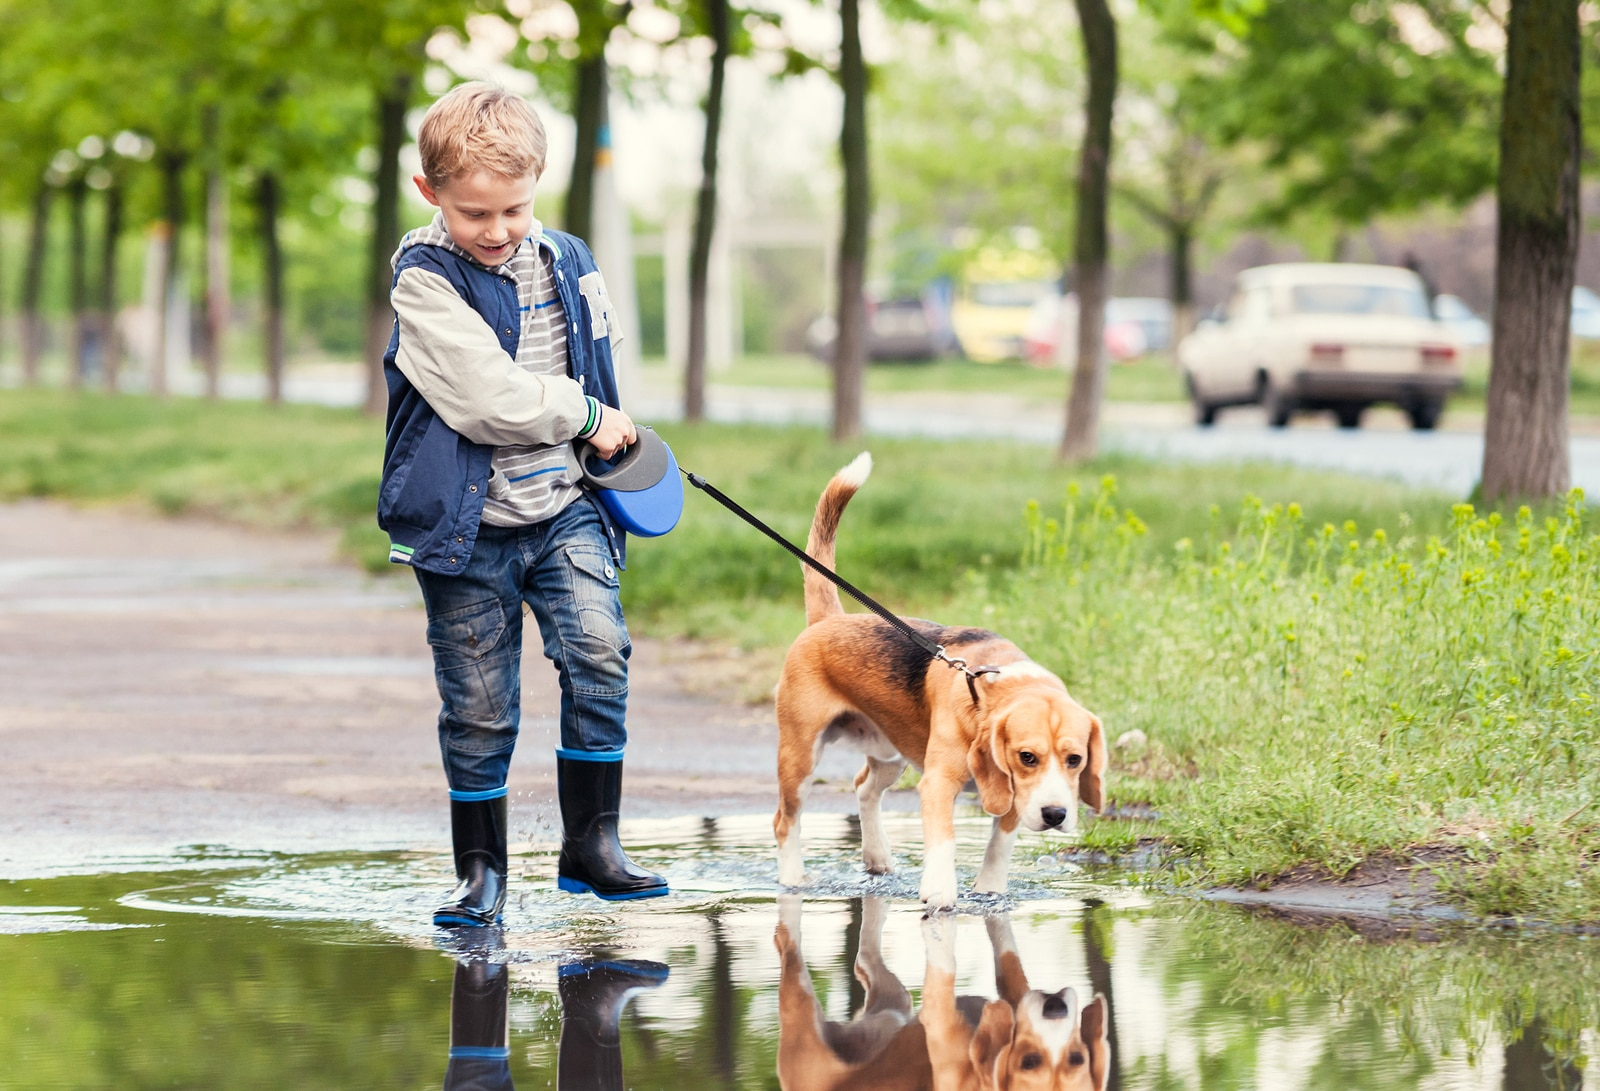 Boy with blue vest and rain boots walks beagle through puddle.